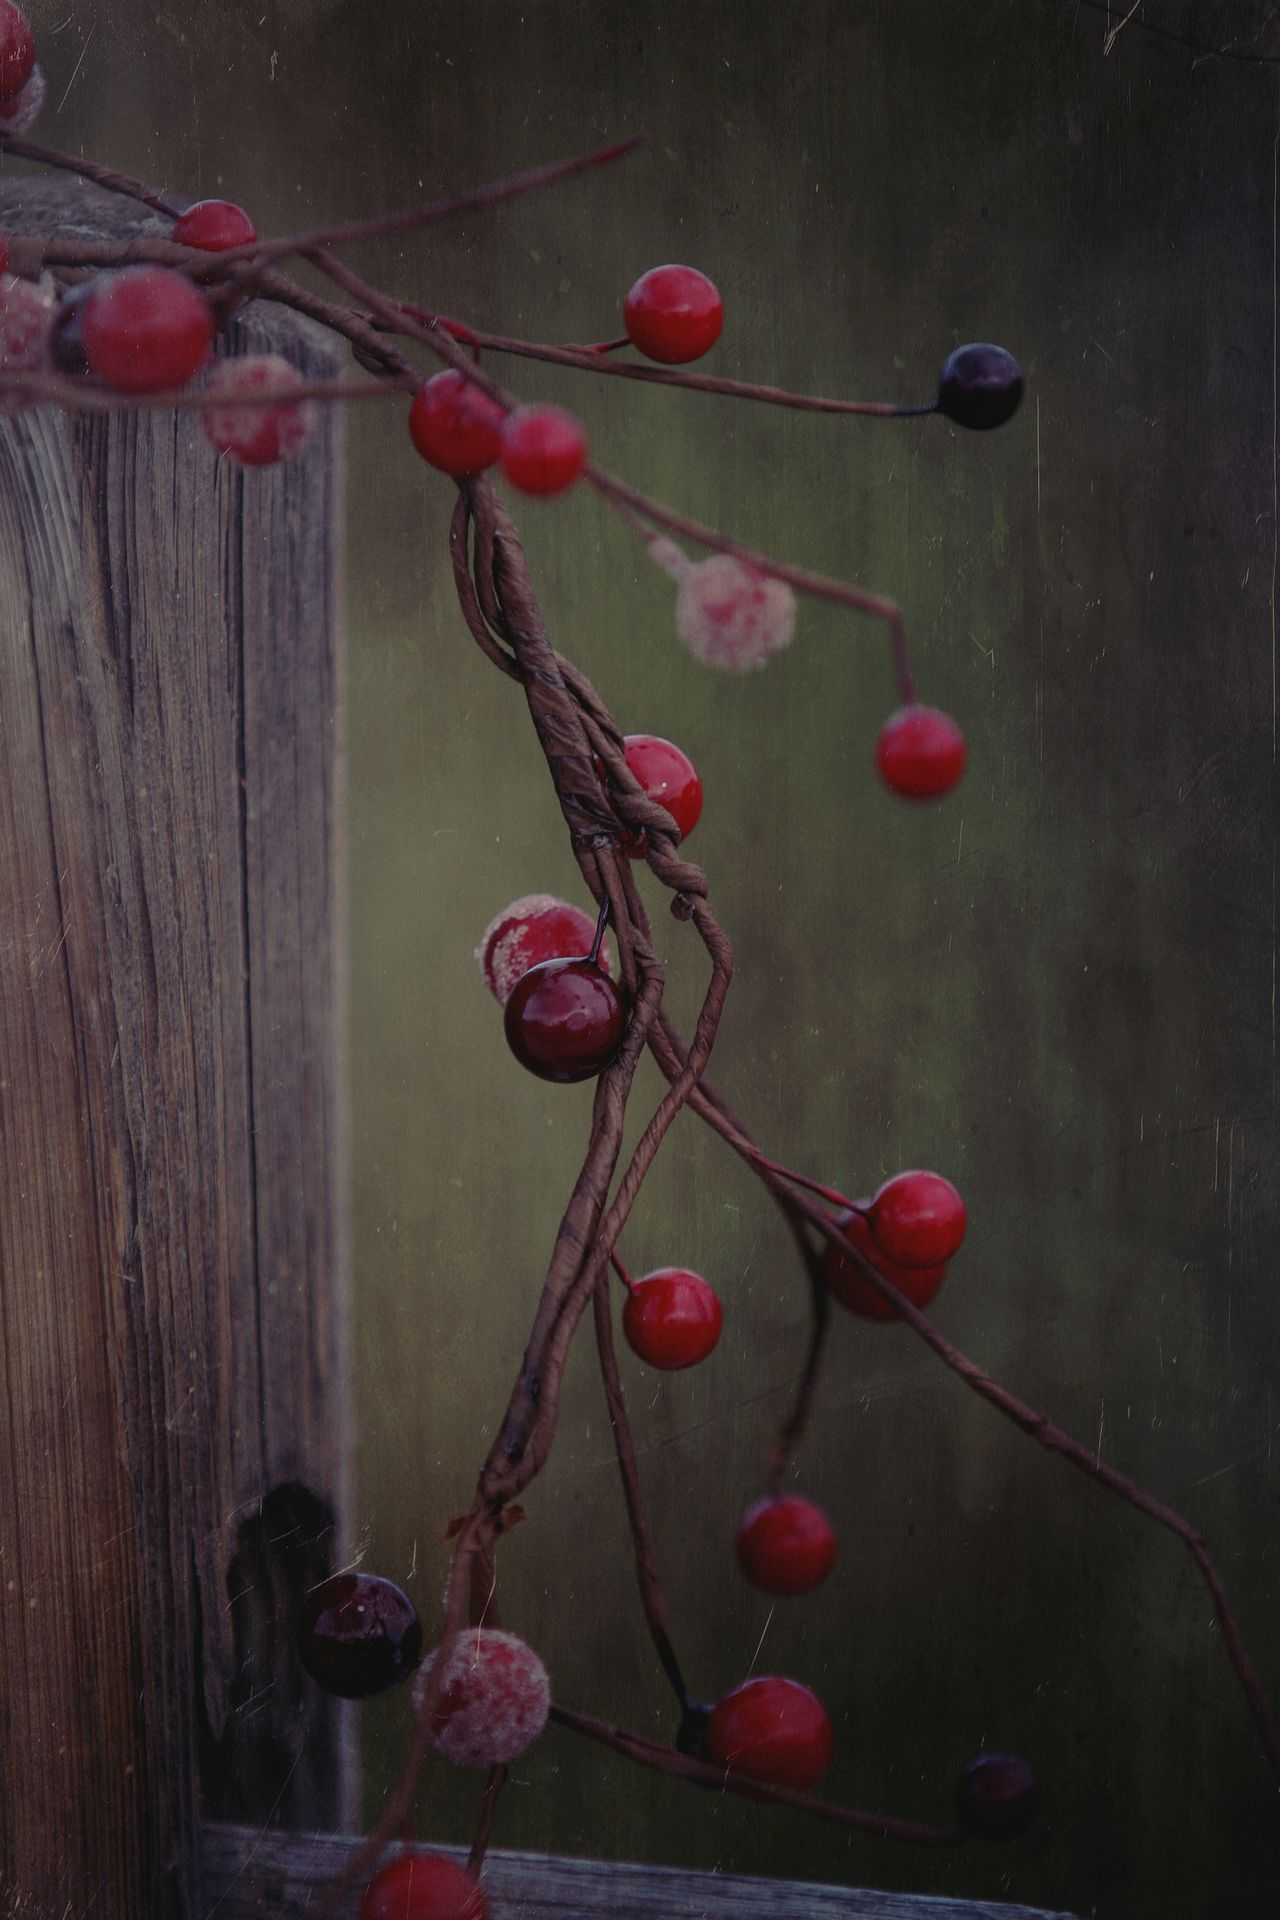 Christmas Decorations Check This Out Photography Taking Photos Nature_collection Photo Berries